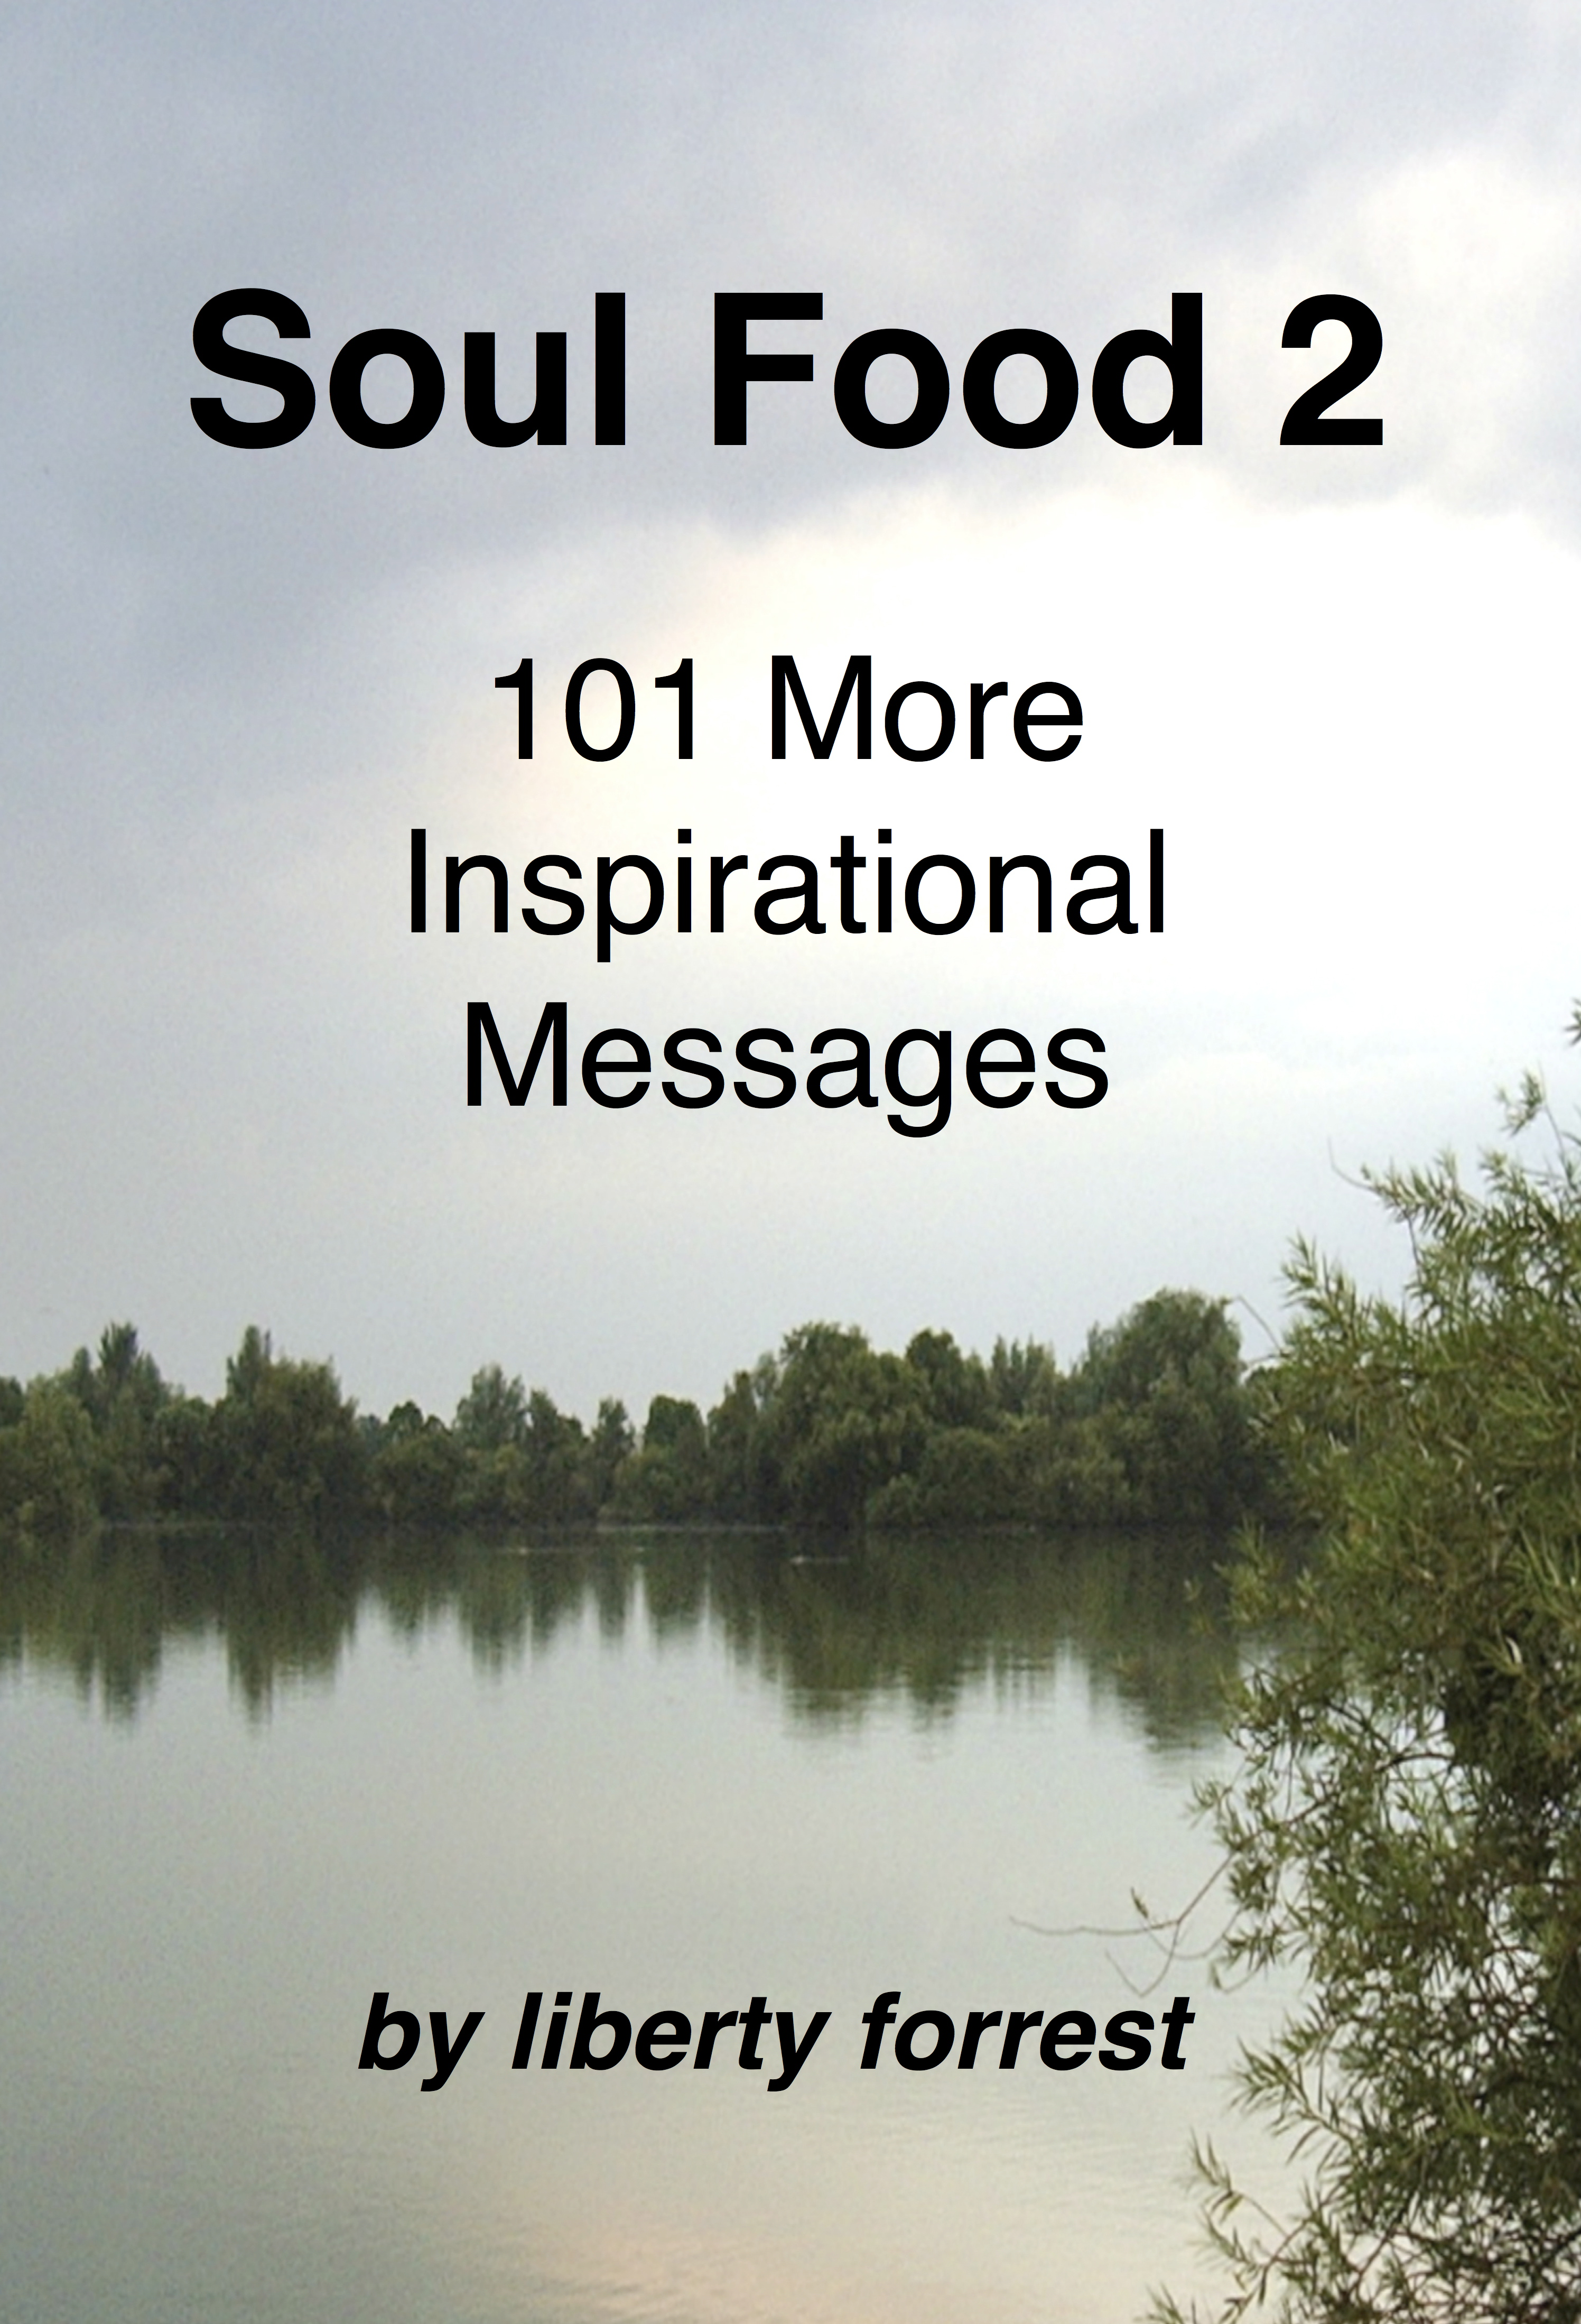 Inspirational Messages Smashwords  Soul Food 2 101 More Inspirational Messages  A Book